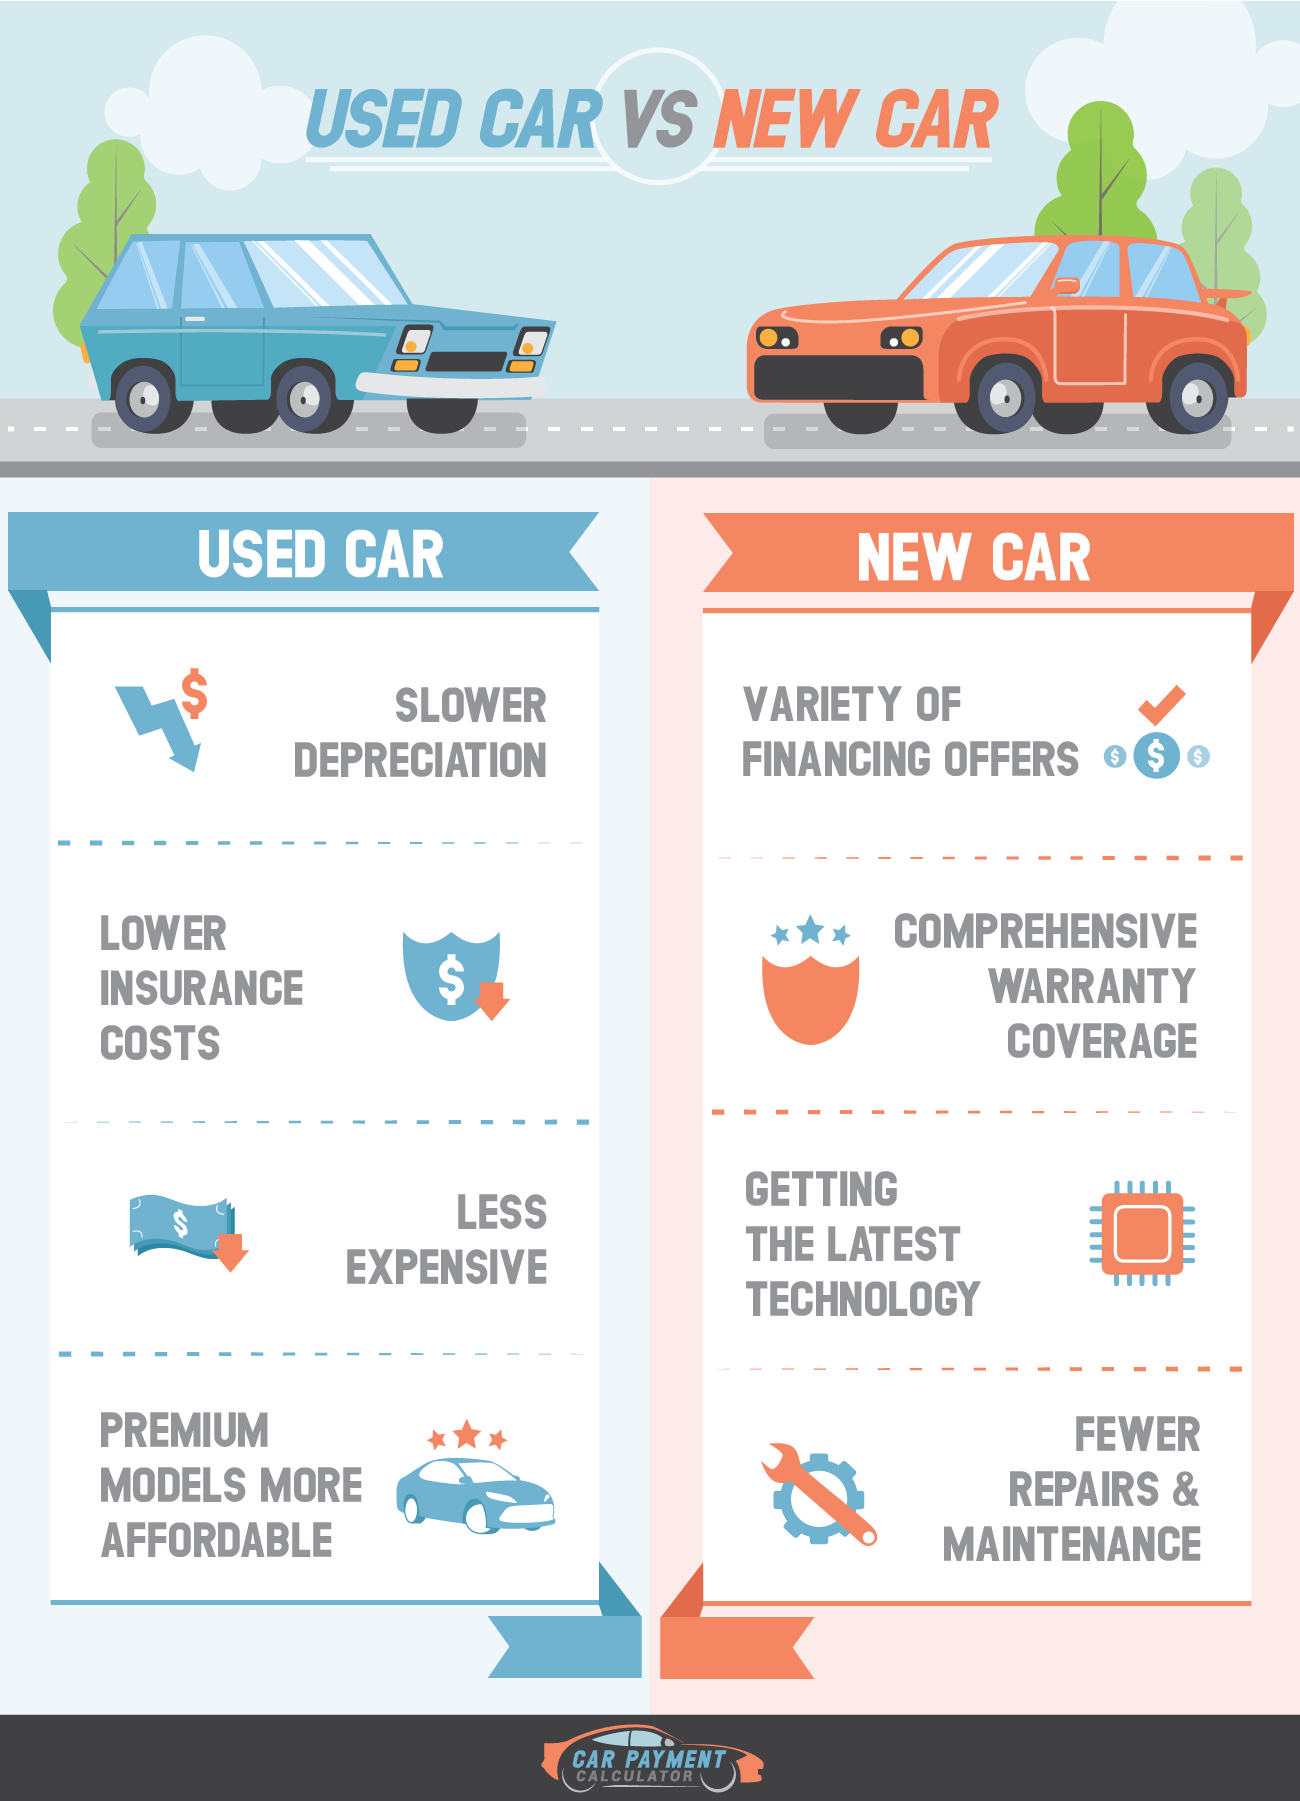 Buying a new car versus buying a used car.